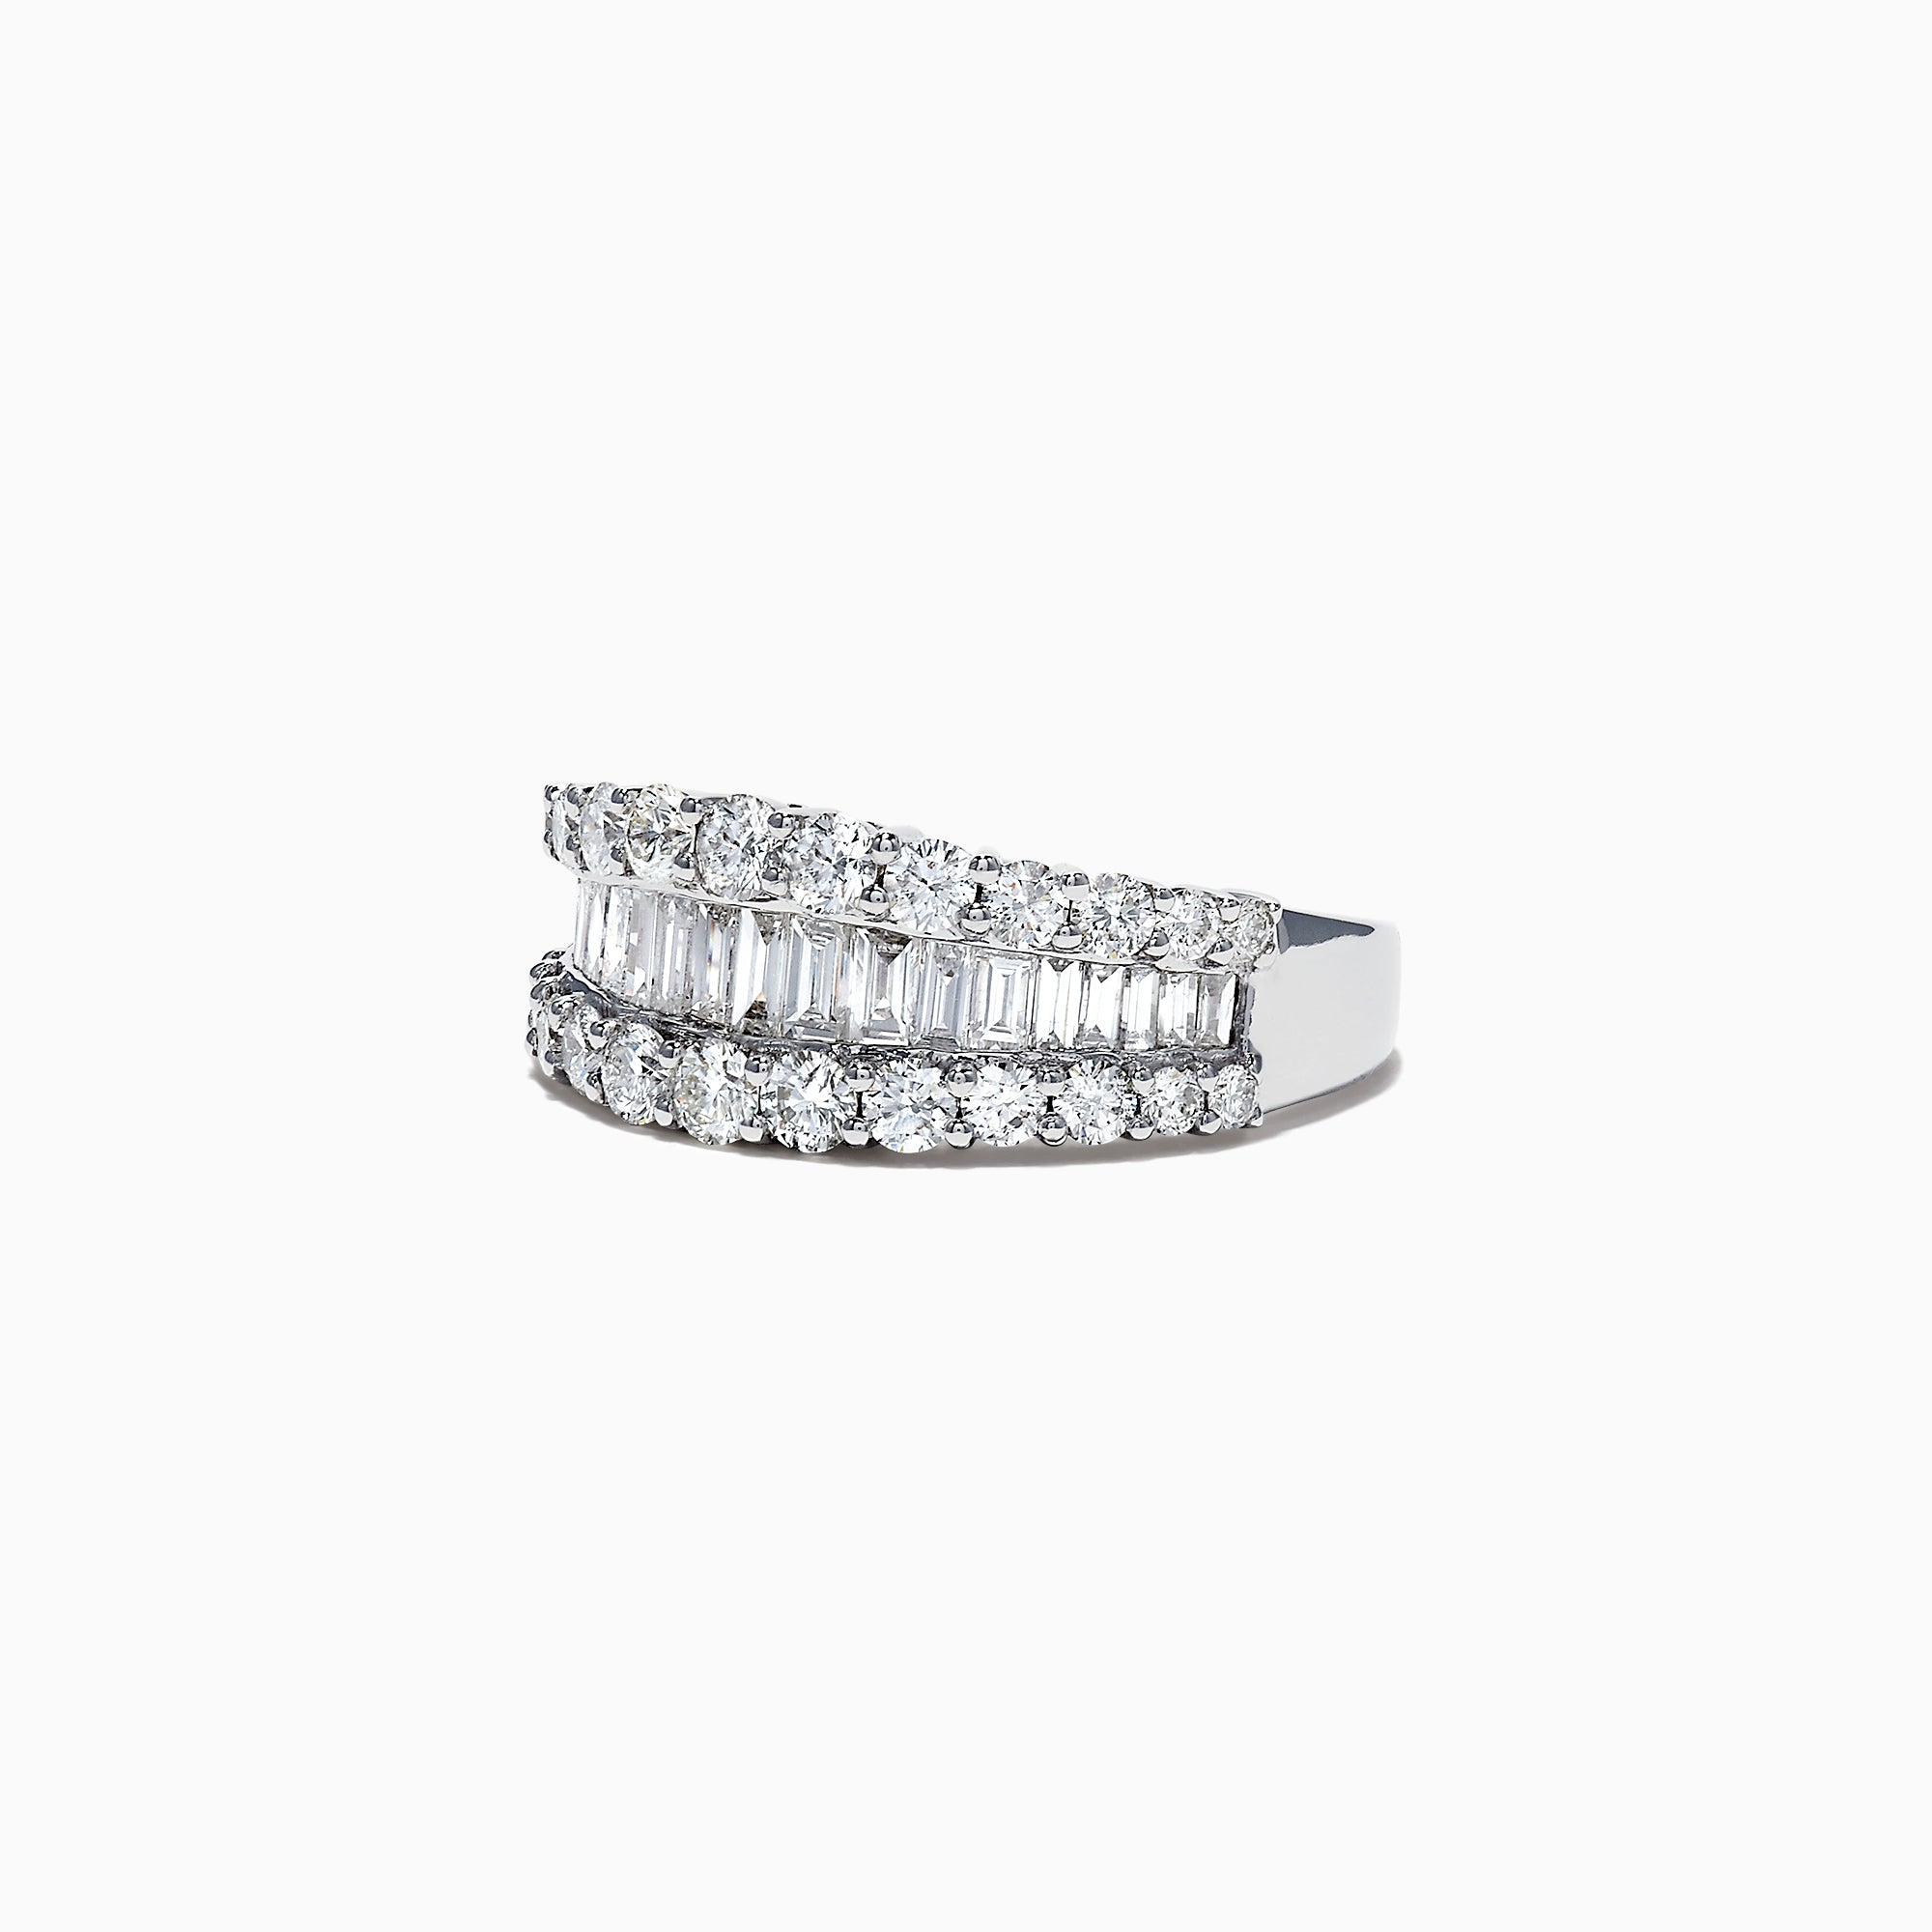 Effy Classique 14K White Gold Diamond Band Ring, 1.55 TCW